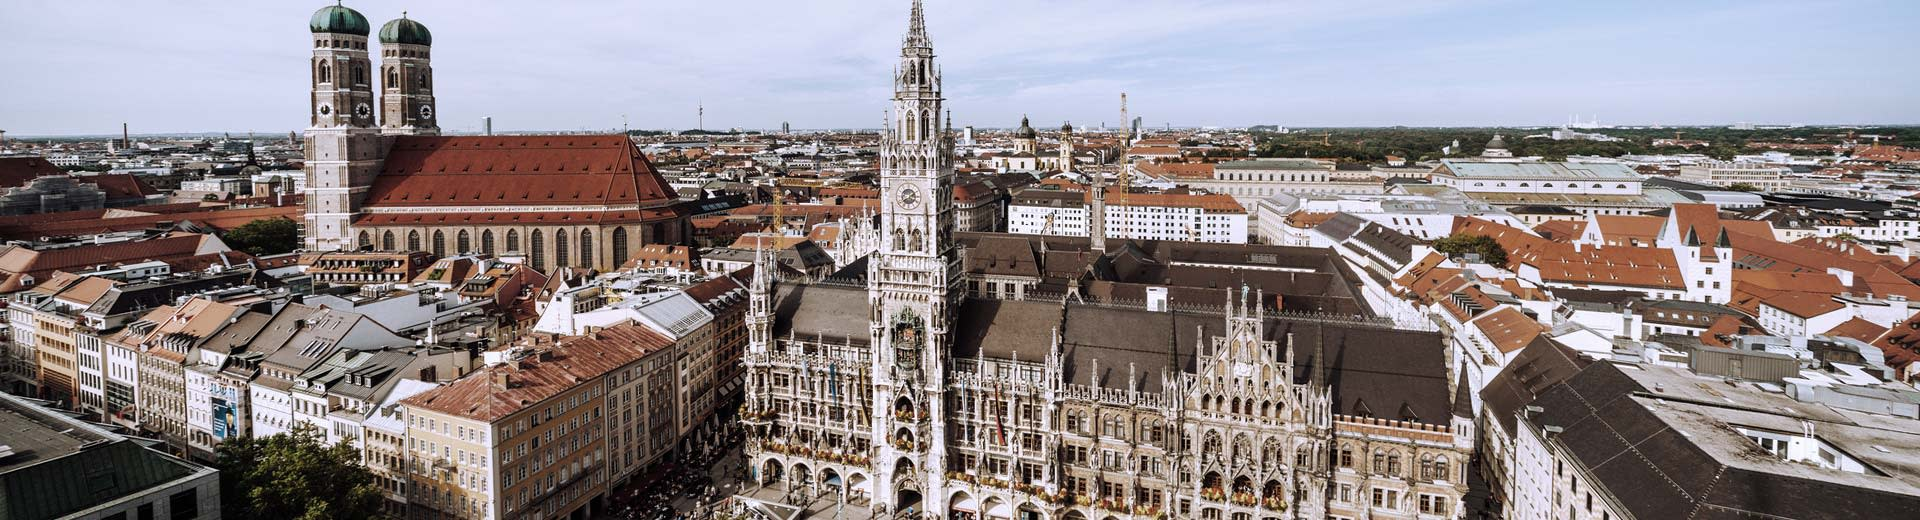 A beautiful town square in Munich on a clear day, with church steeples dominating the skyline